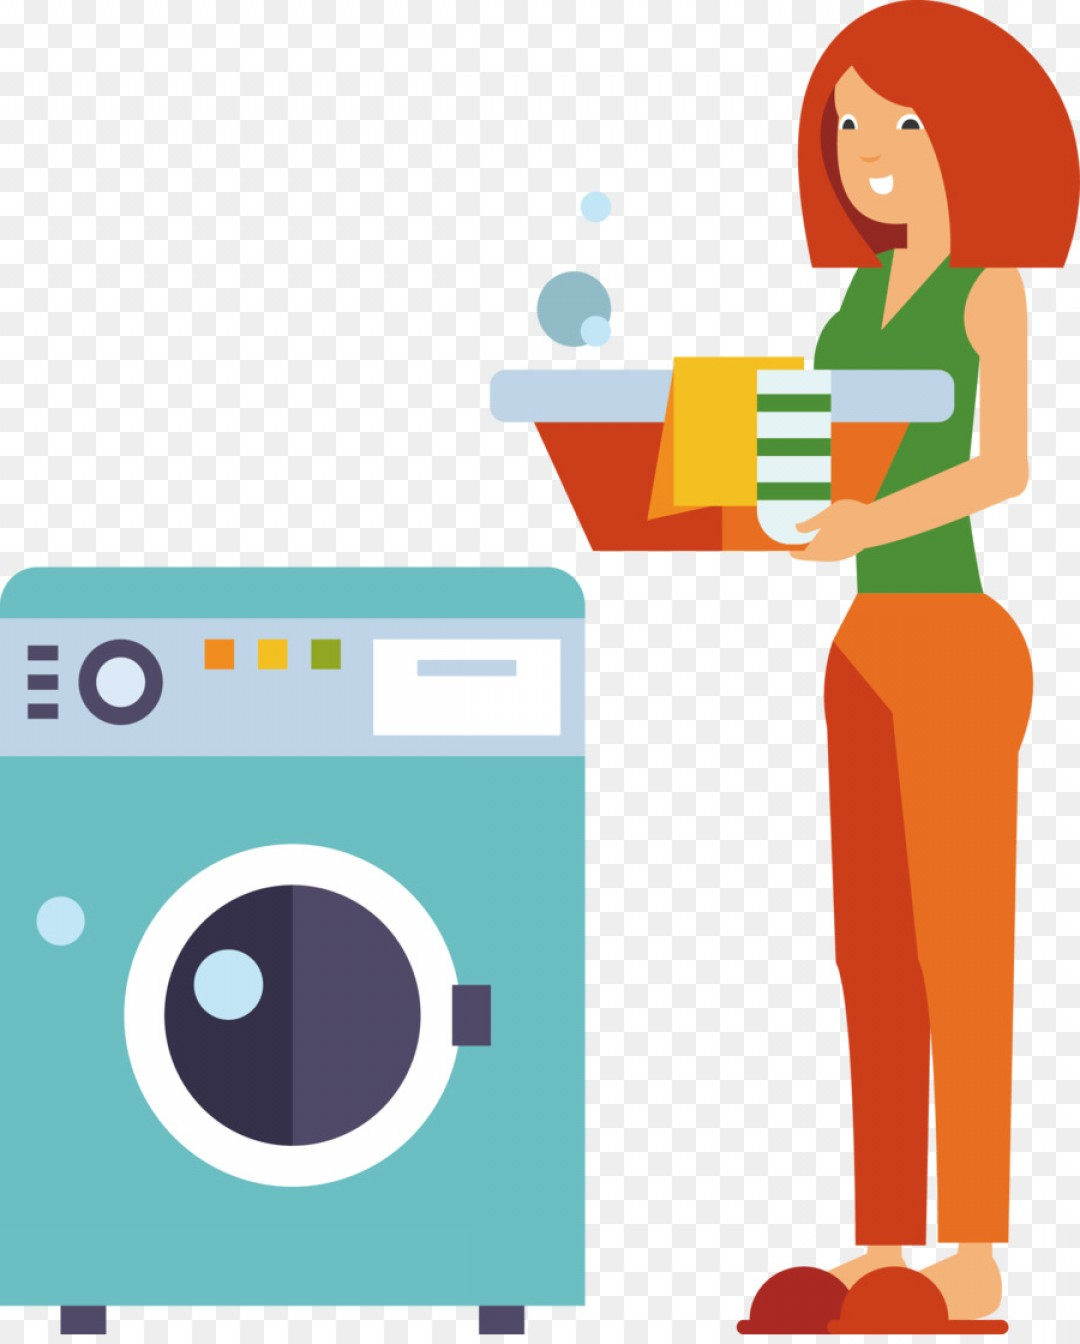 Washer Machine Vector Decal: Png Washing Machine Laundry Room Ironing Wash Your Clo